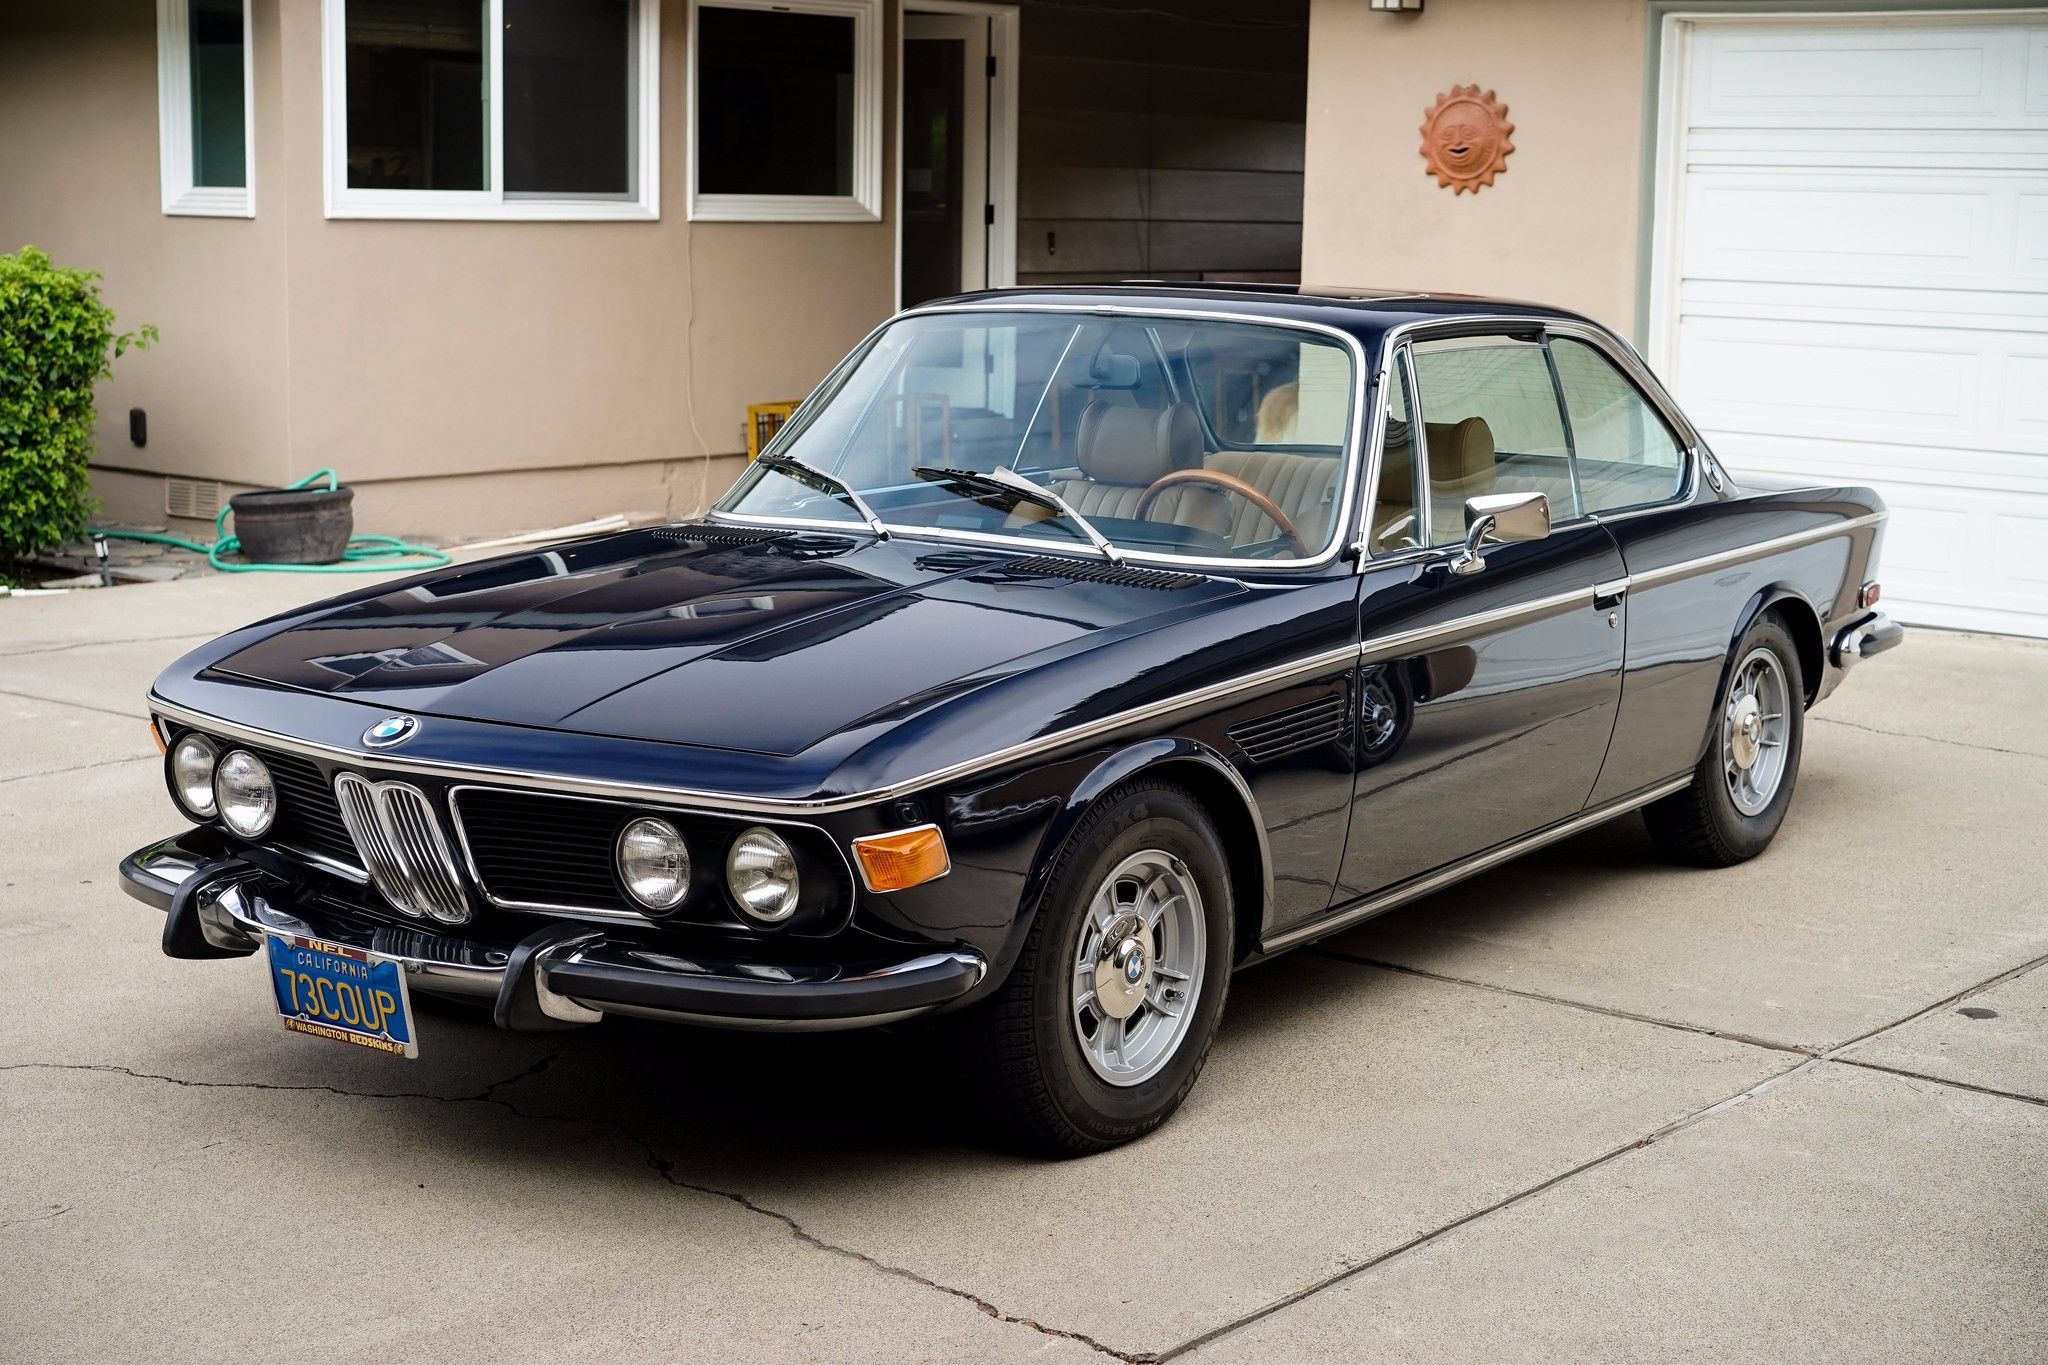 1973 BMW 3.0CS Sunroof Coupe